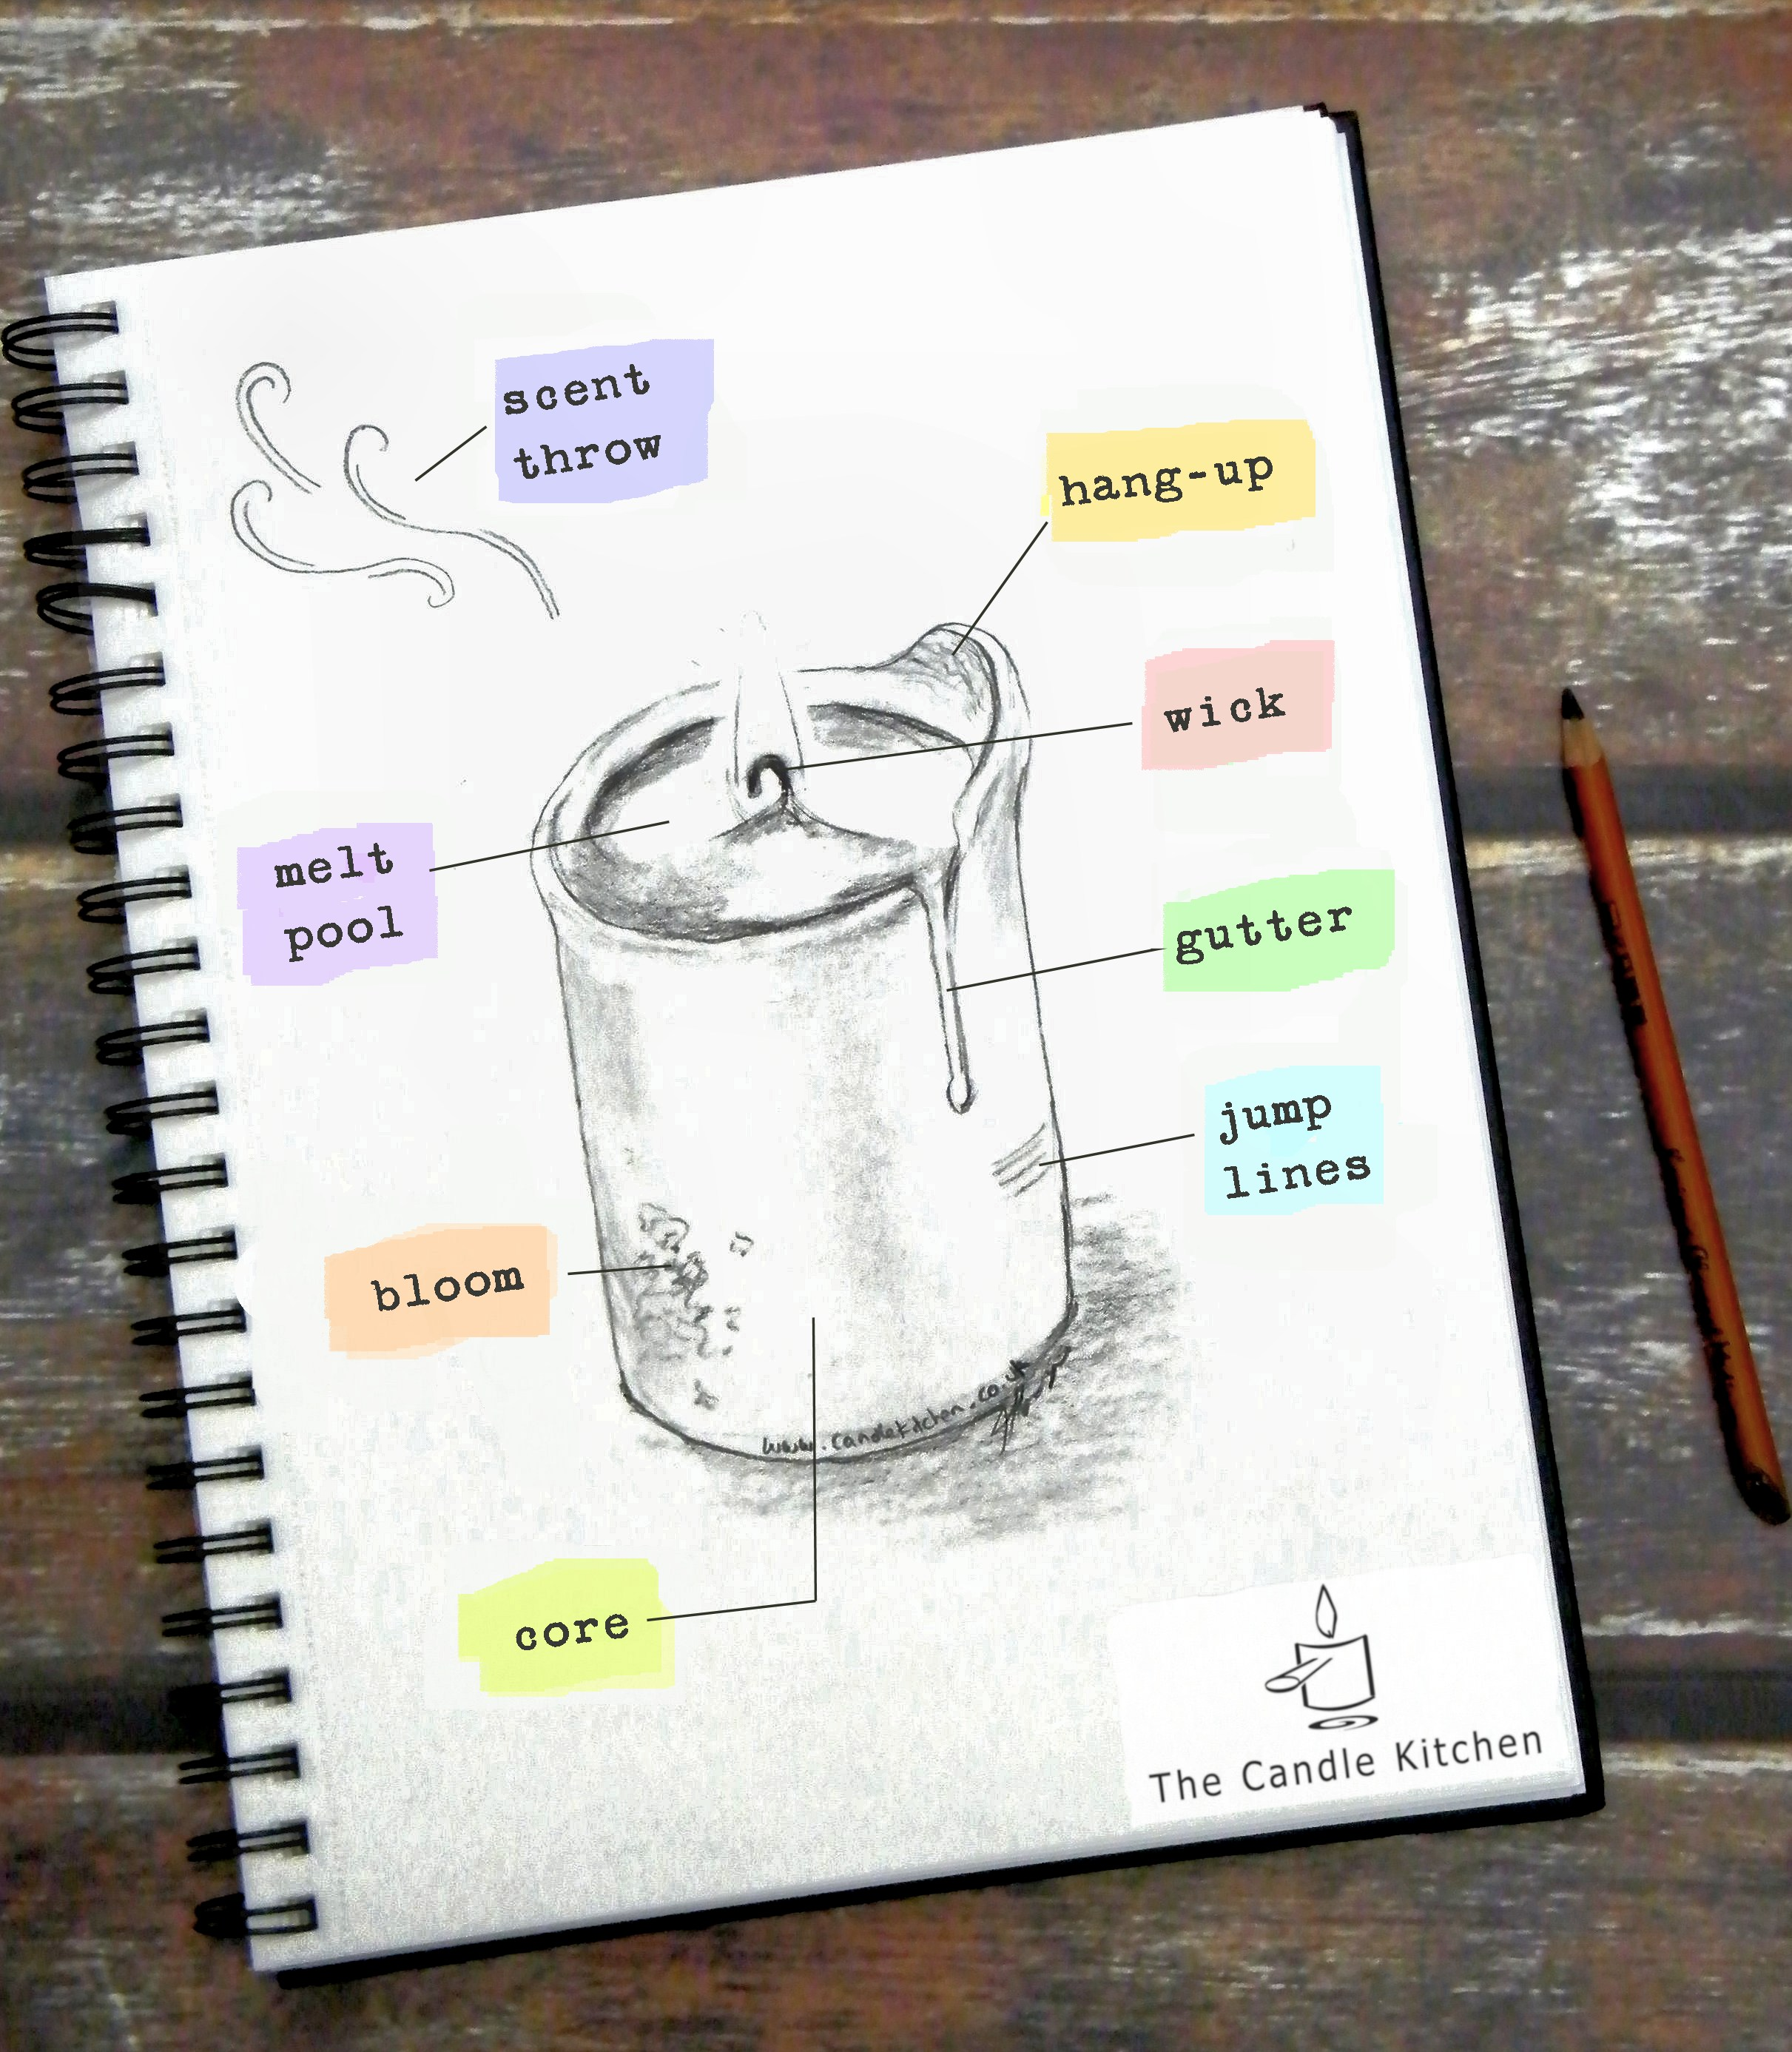 Annotated drawing of a candle